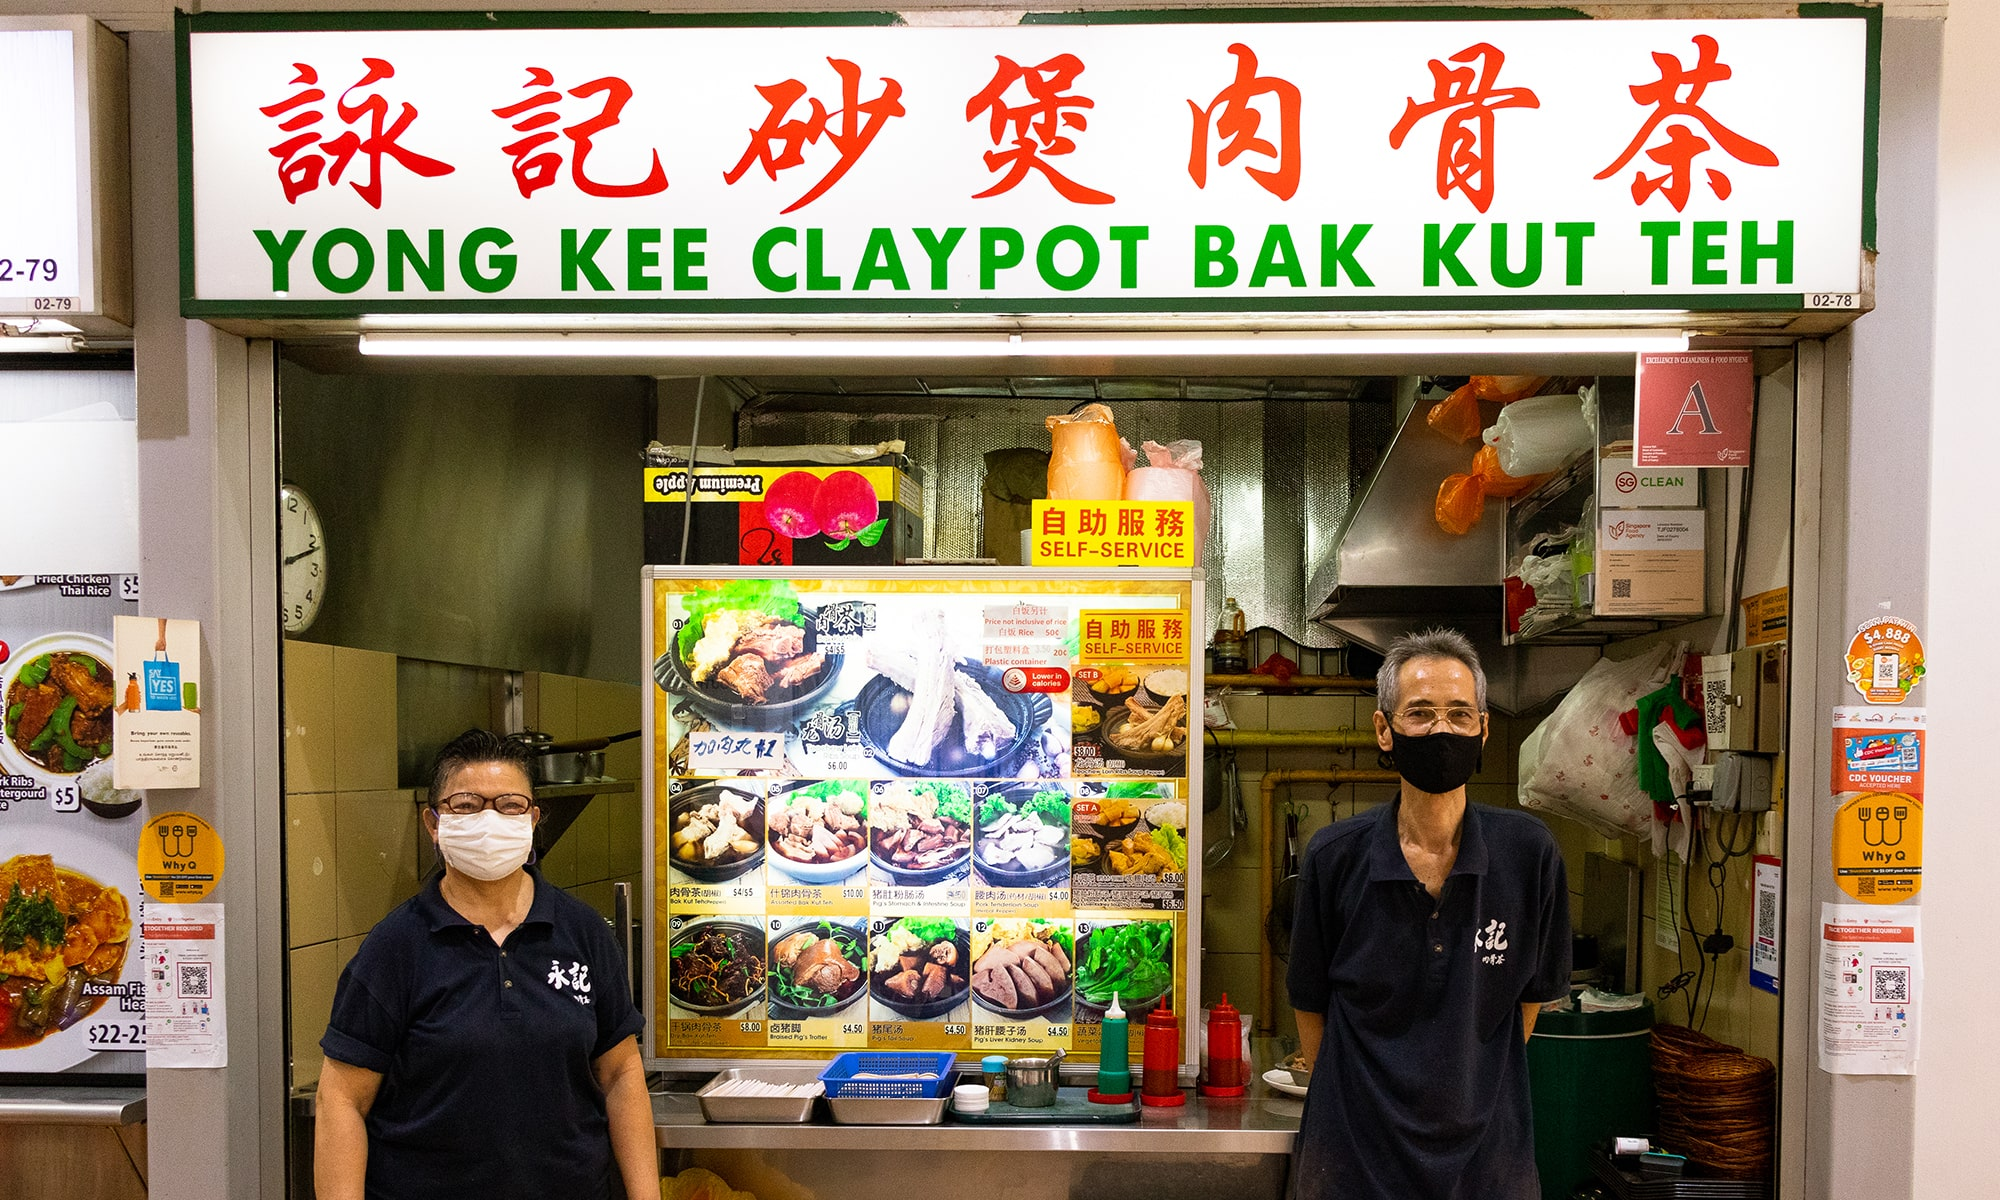 Owner of Yong Kee Bak Kut Teh, available on WhyQ for delivery.